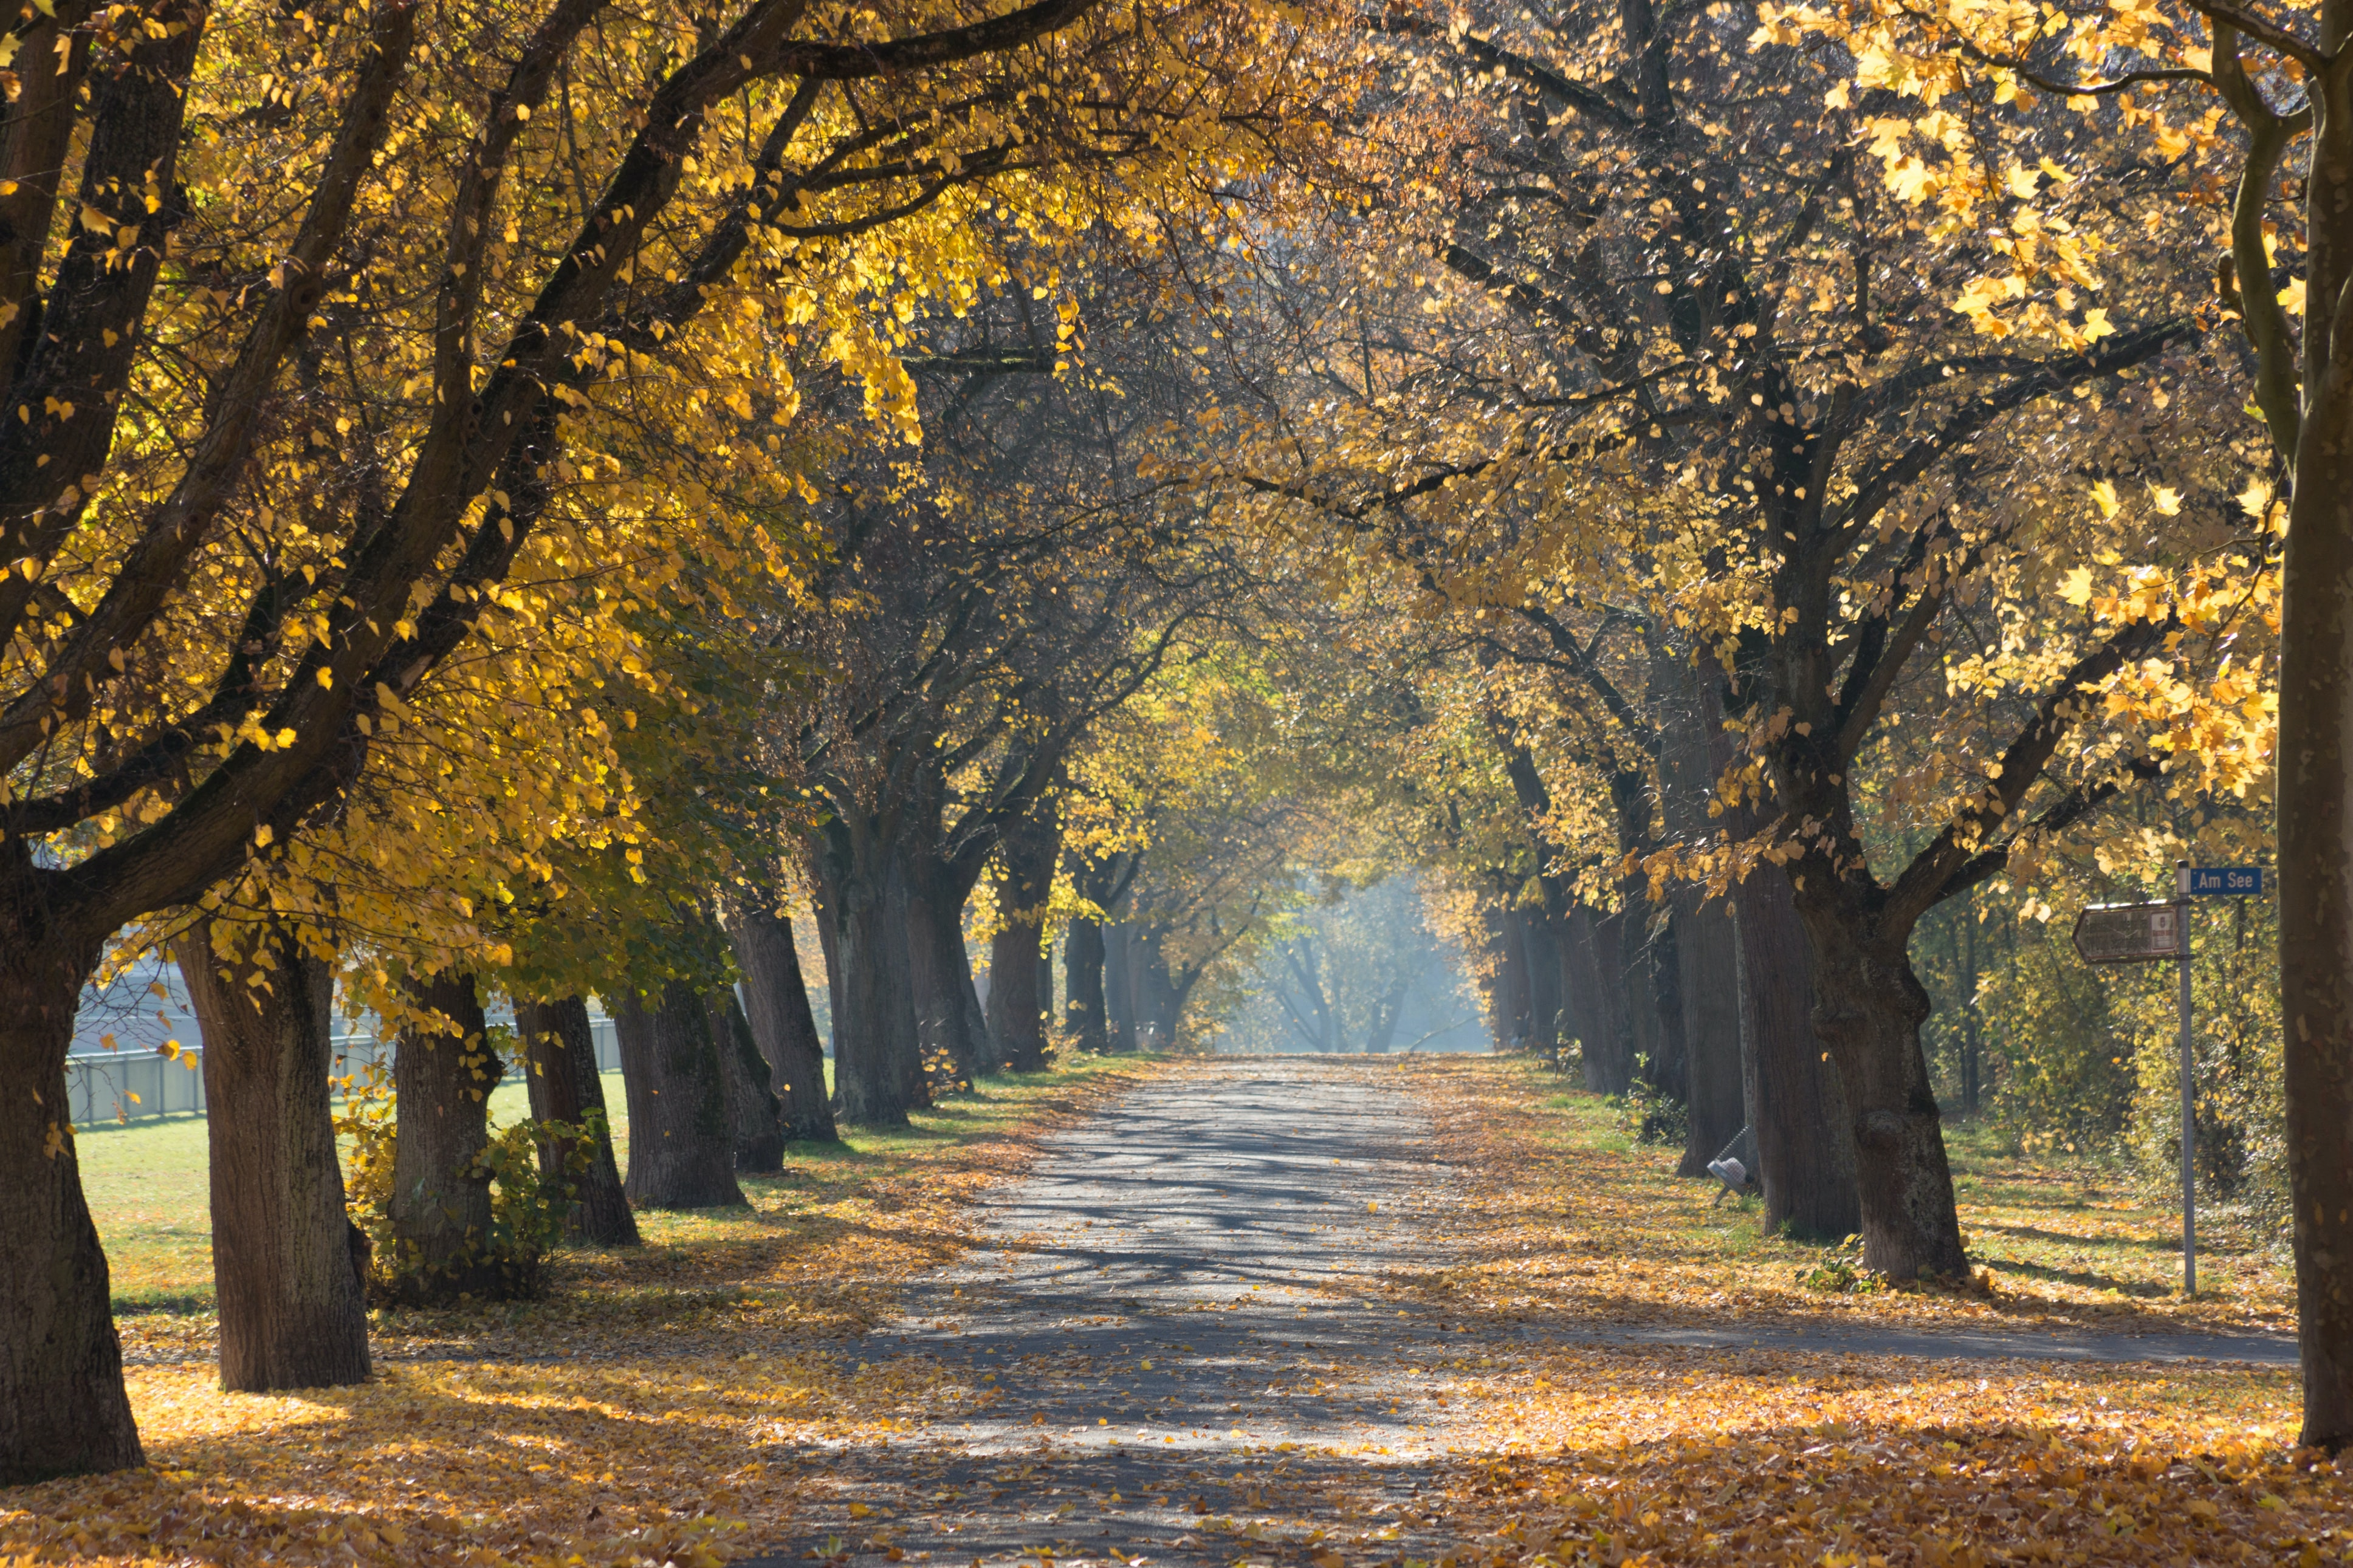 A tree-lined path with trees shedding their leaves in the middle of autumn